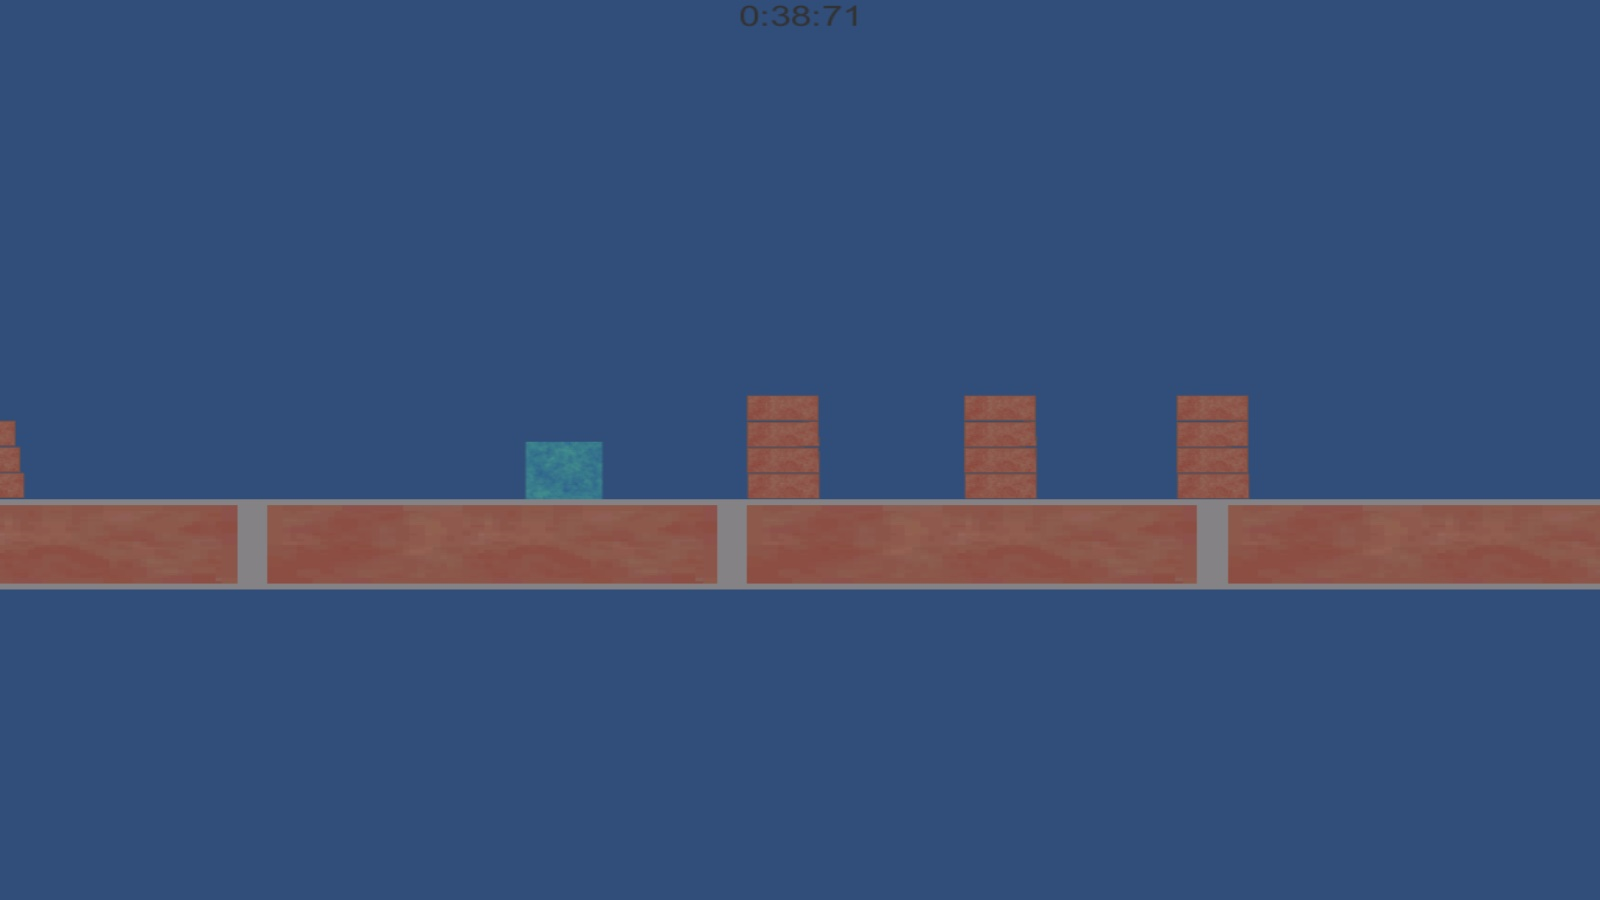 Brick Obstacle Course by cdrch